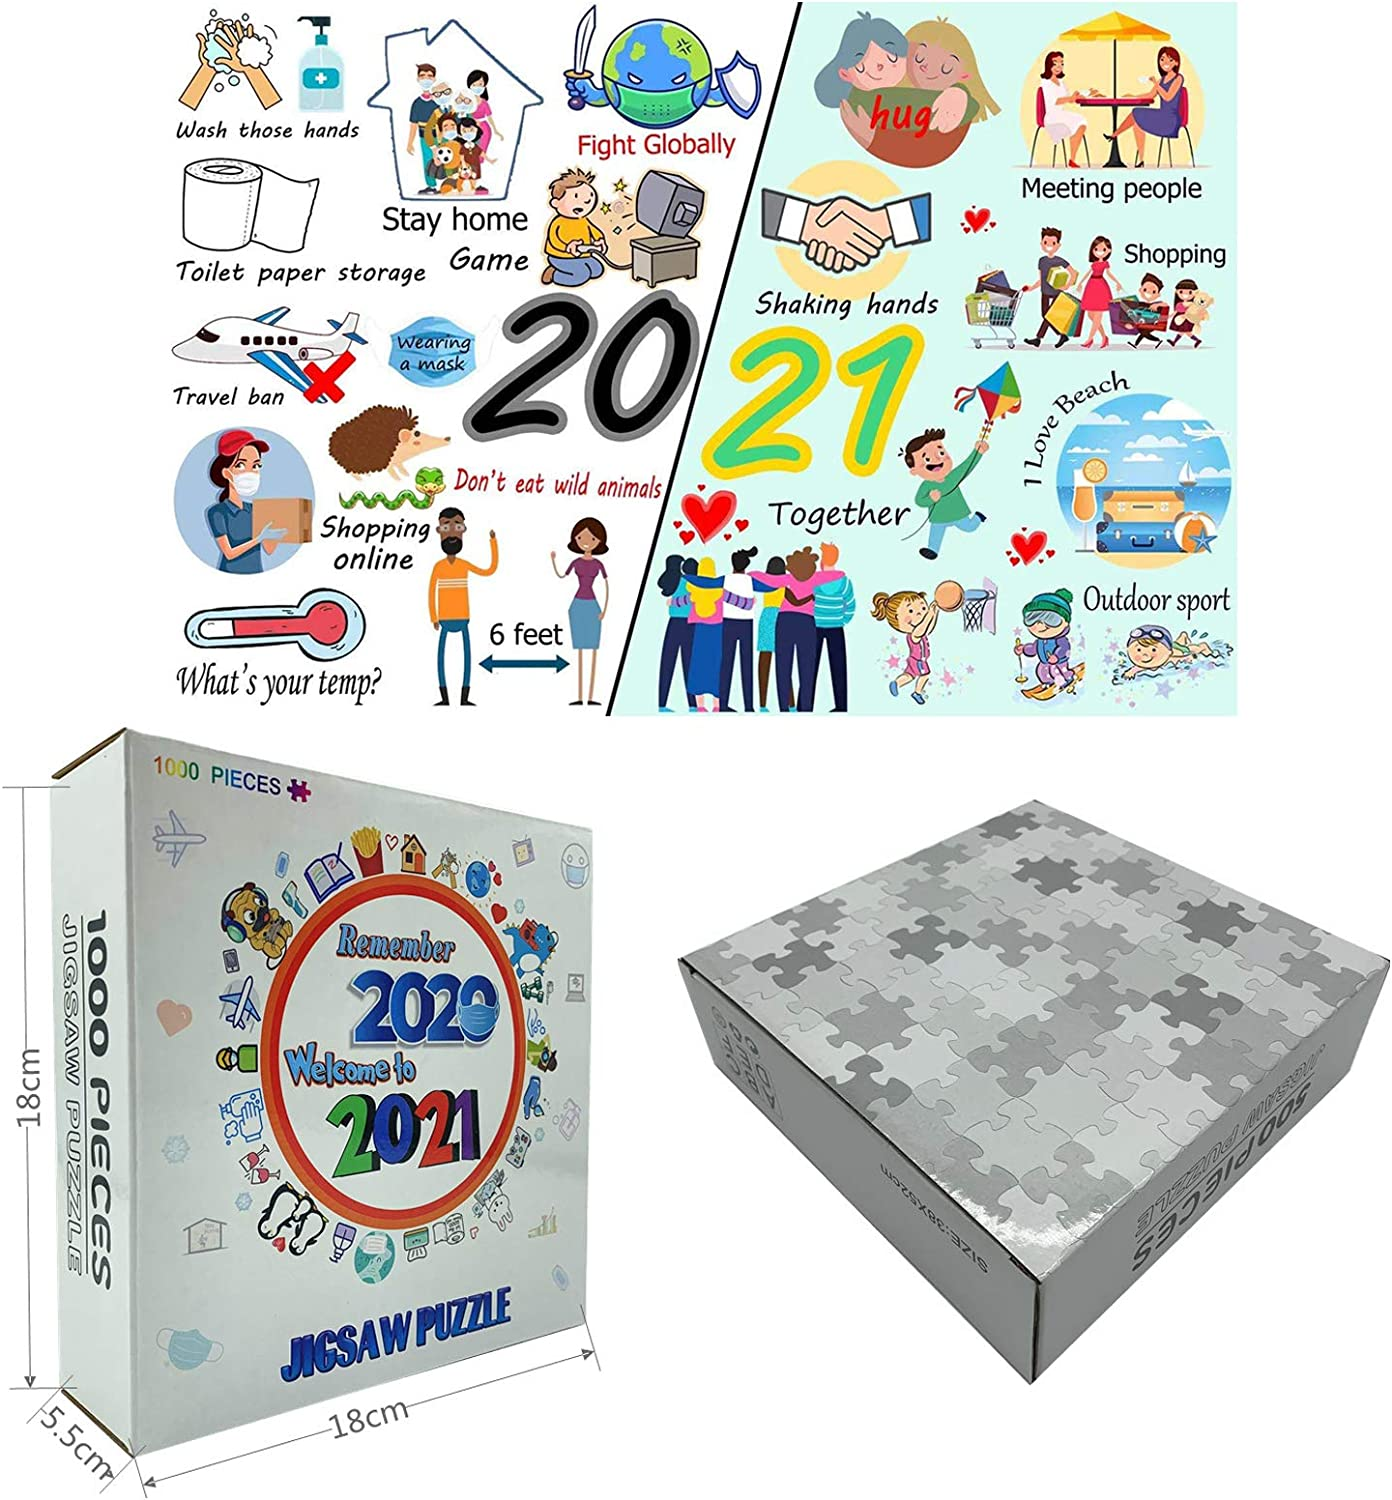 2020 to 2021 Jigsaw Puzzles for Adults, Kids, Paper Puzzles with Friend Family for Children Home Game Educational Toys 2021 Happy New Year, 1000 Pieces